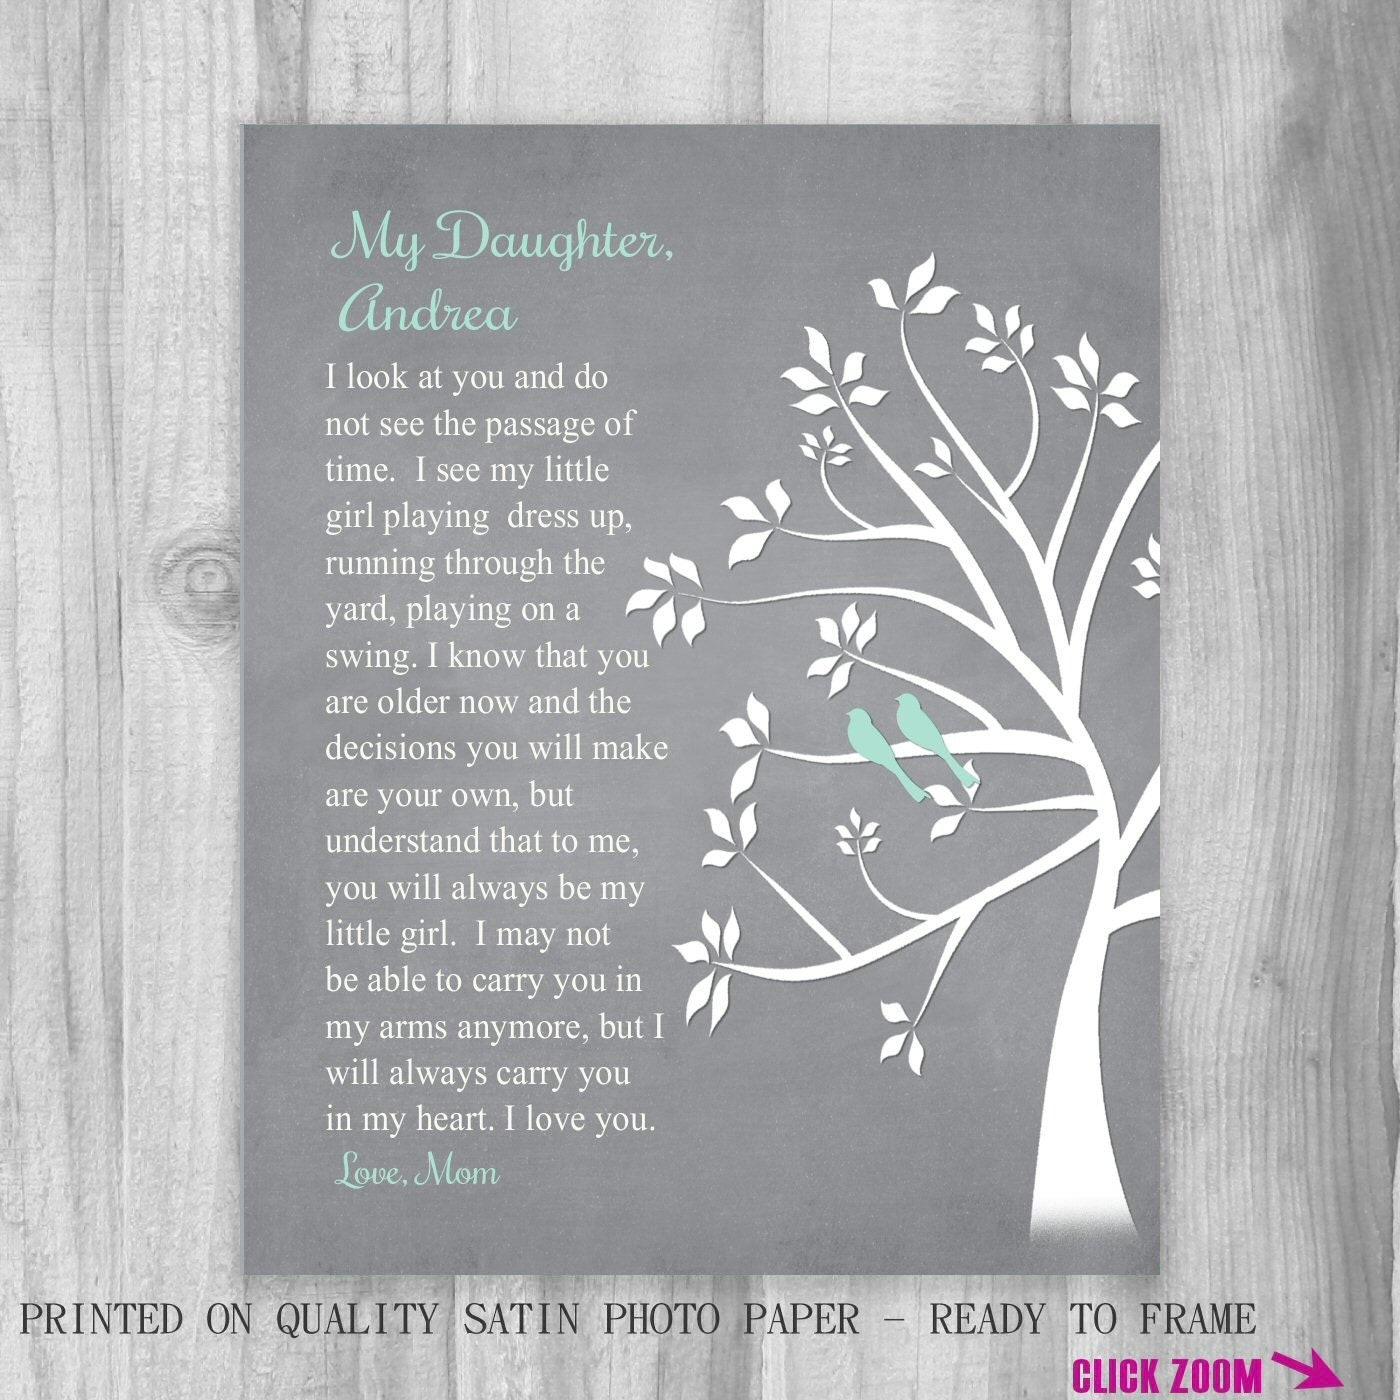 Gift Ideas For Mother To Give Daughter On Wedding Day : Ideas Gifts From Mother To Daughter On Wedding Day wedding day gift ...